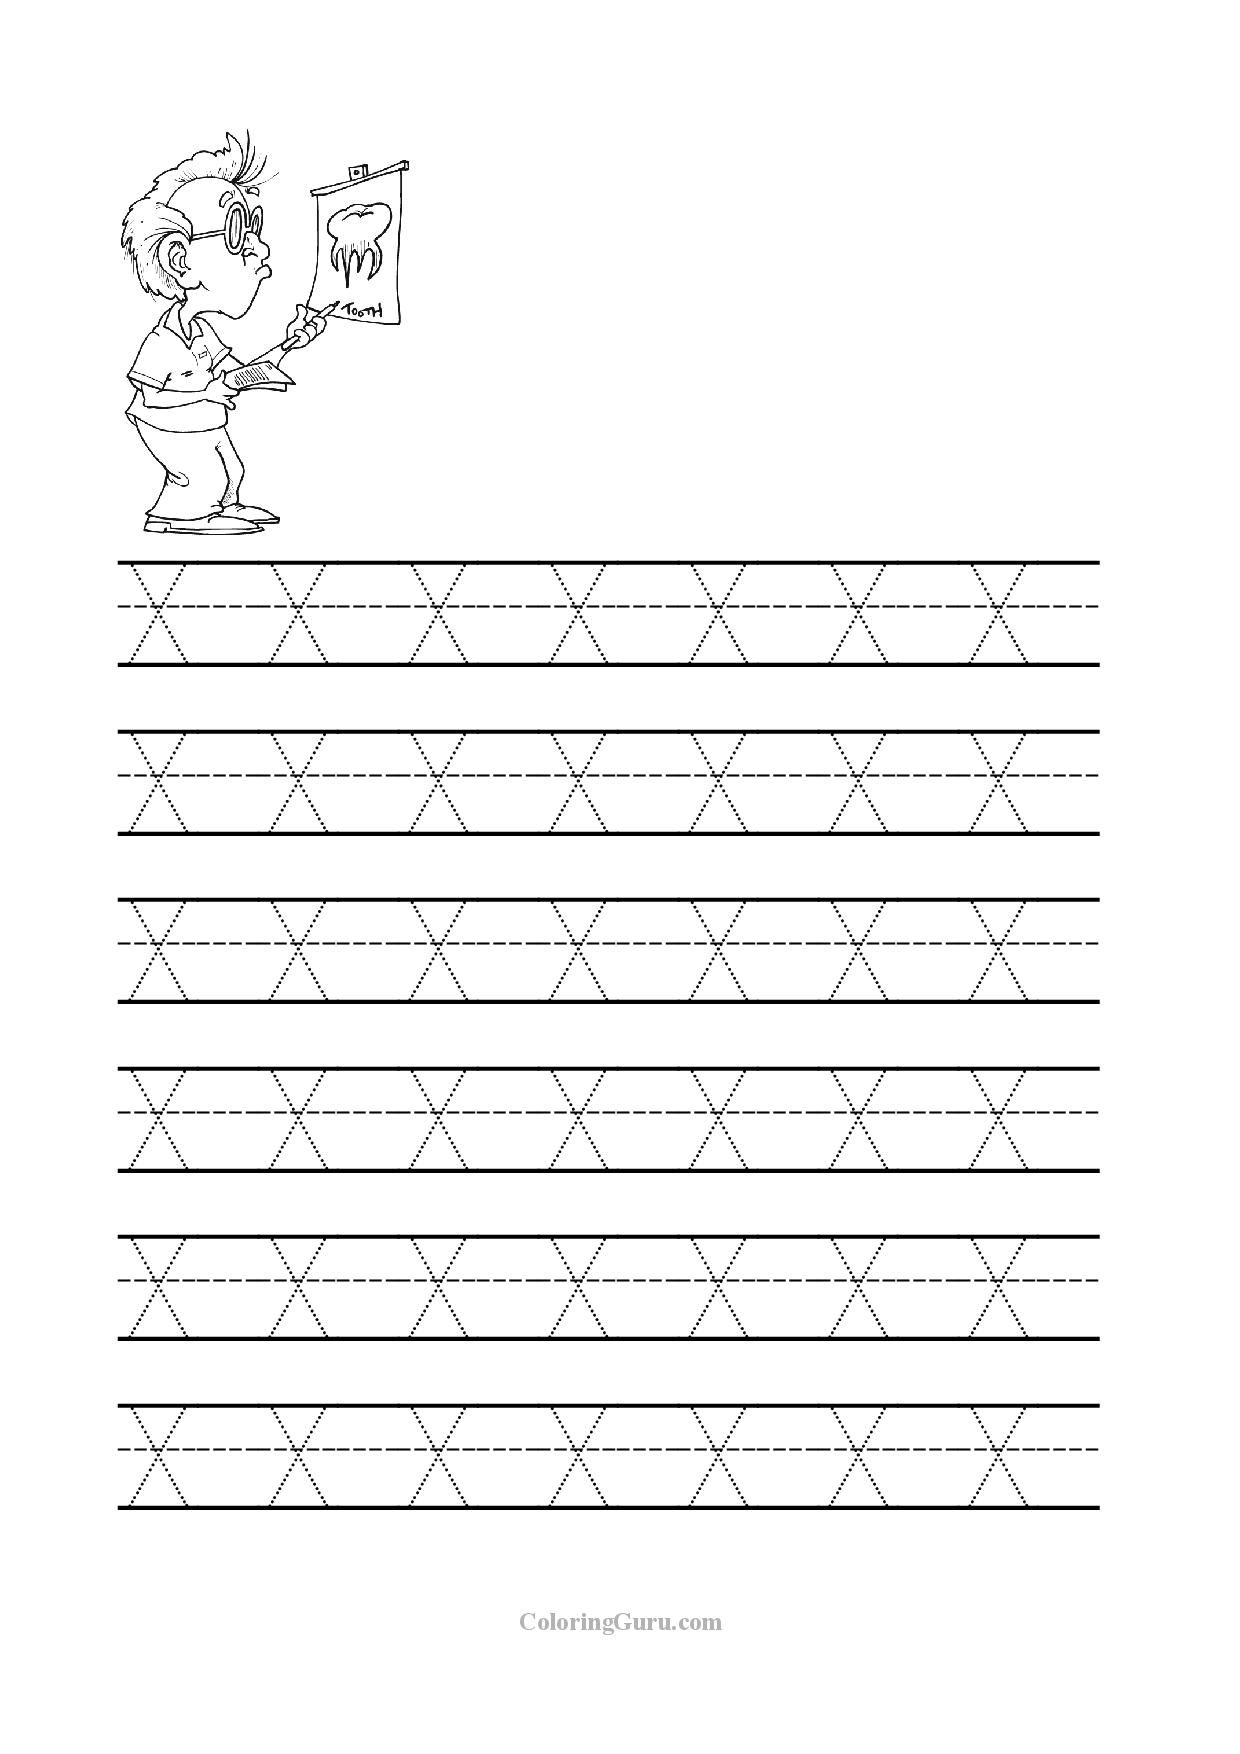 Free Printable Tracing Letter X Worksheets For Preschool inside Tracing Letter X Preschool